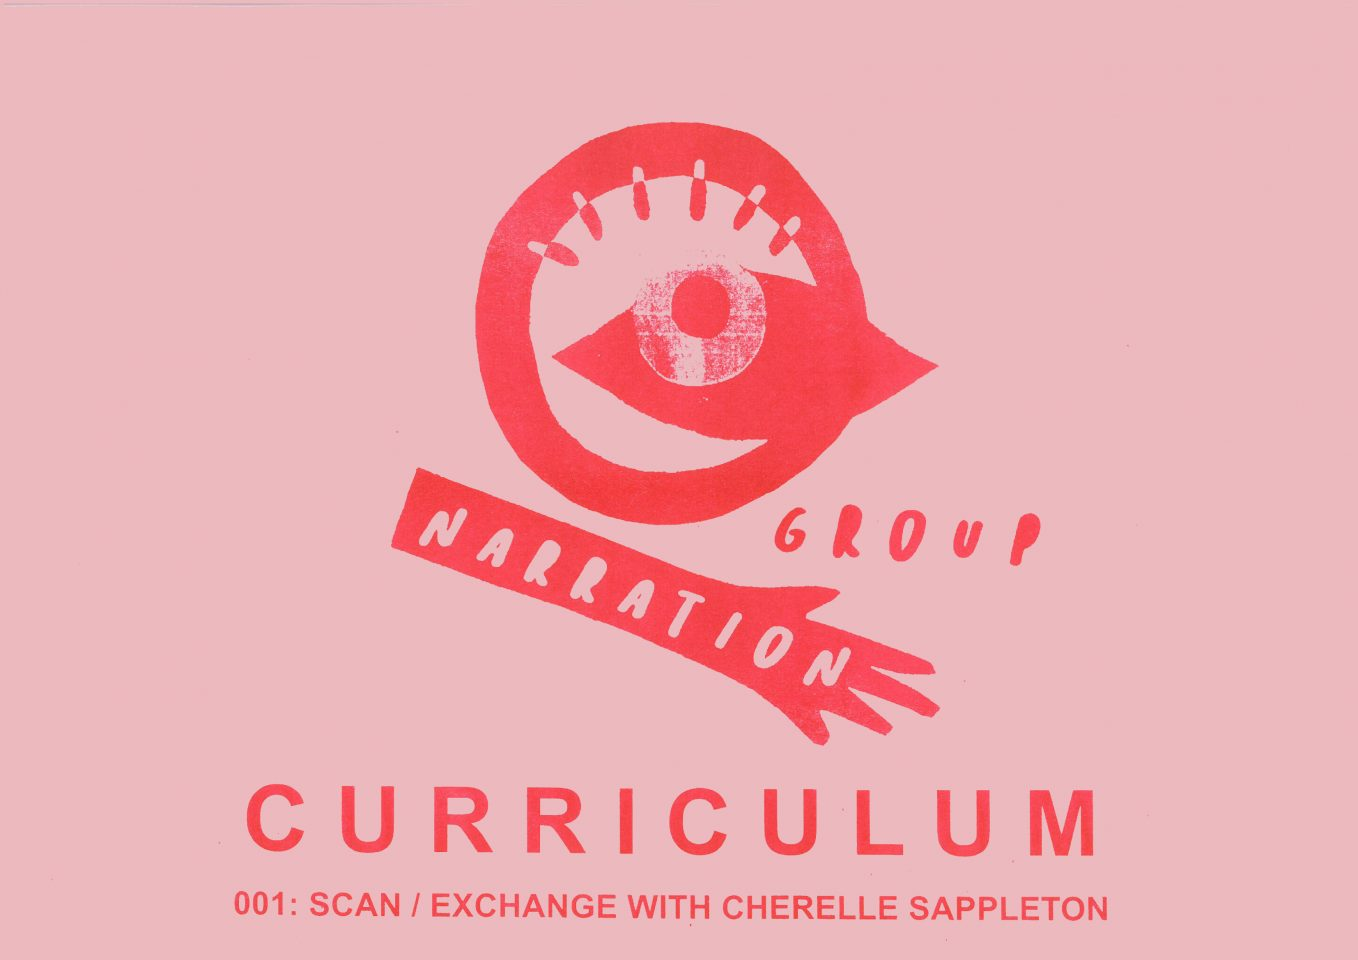 CURRICULUM 001: TALK: SCAN/EXCHANGE WITH CHERELLE SAPPLETON